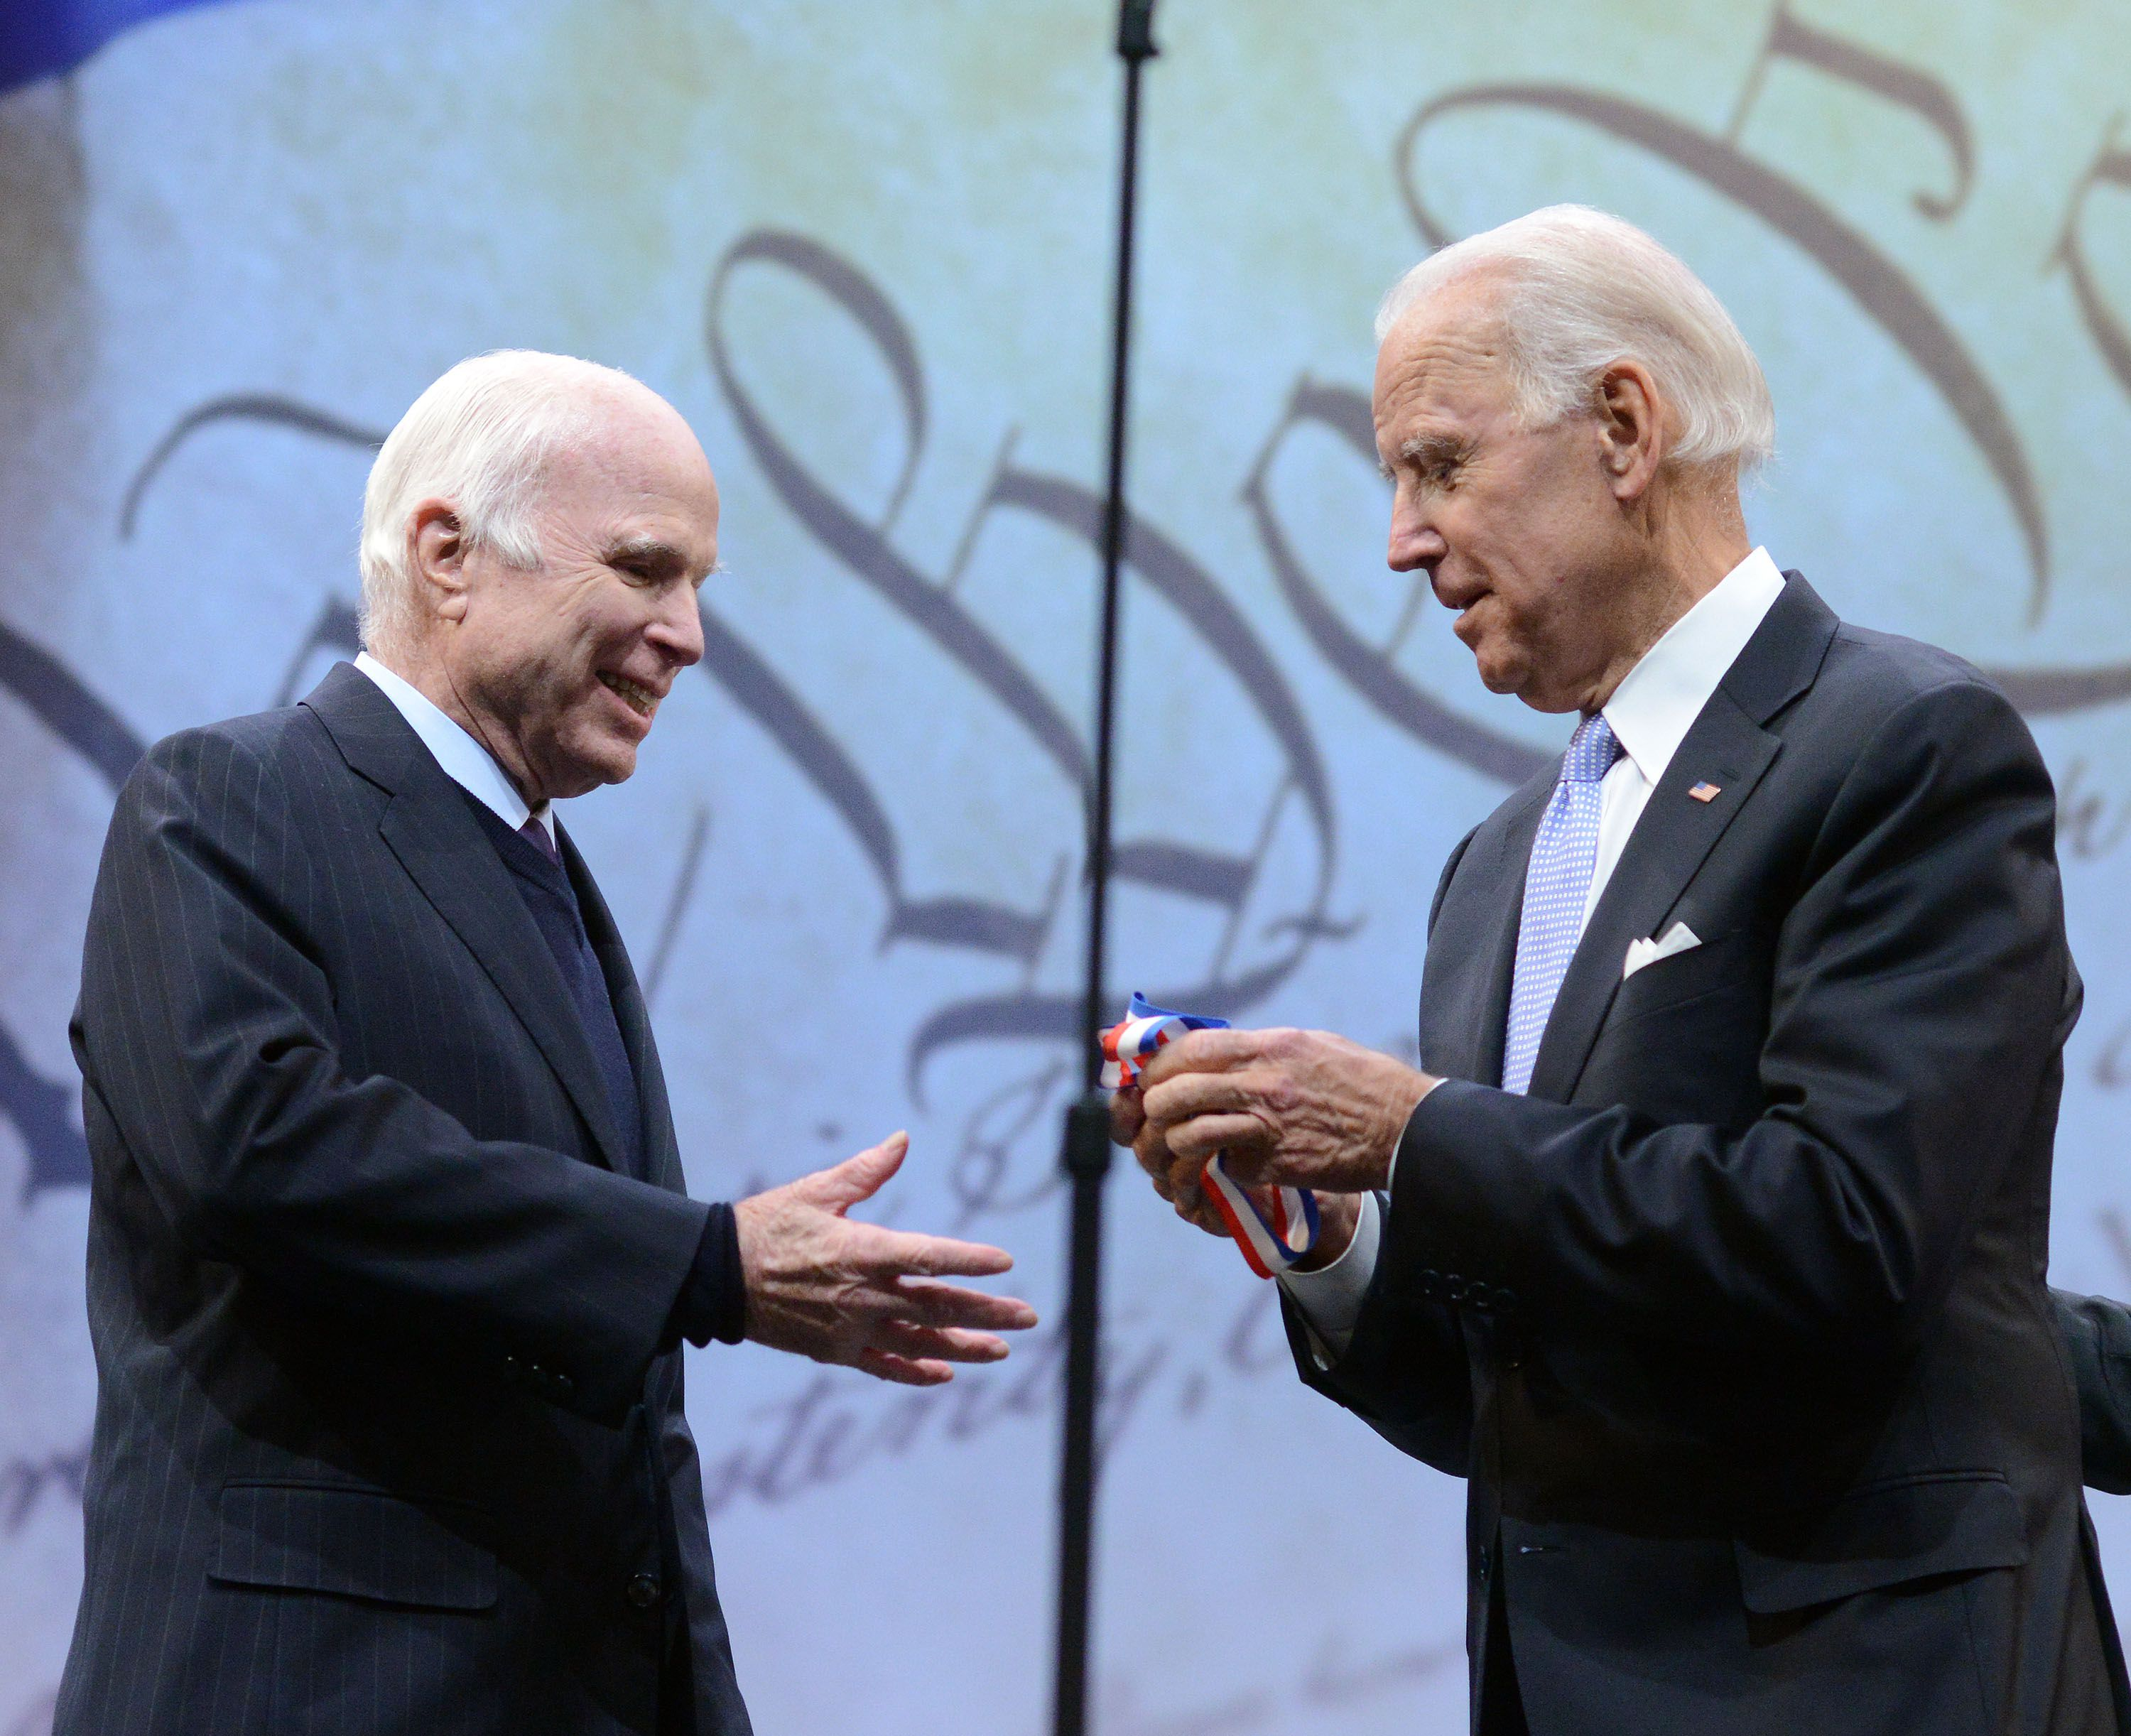 Joe Biden gives McCain the medal of Freedom